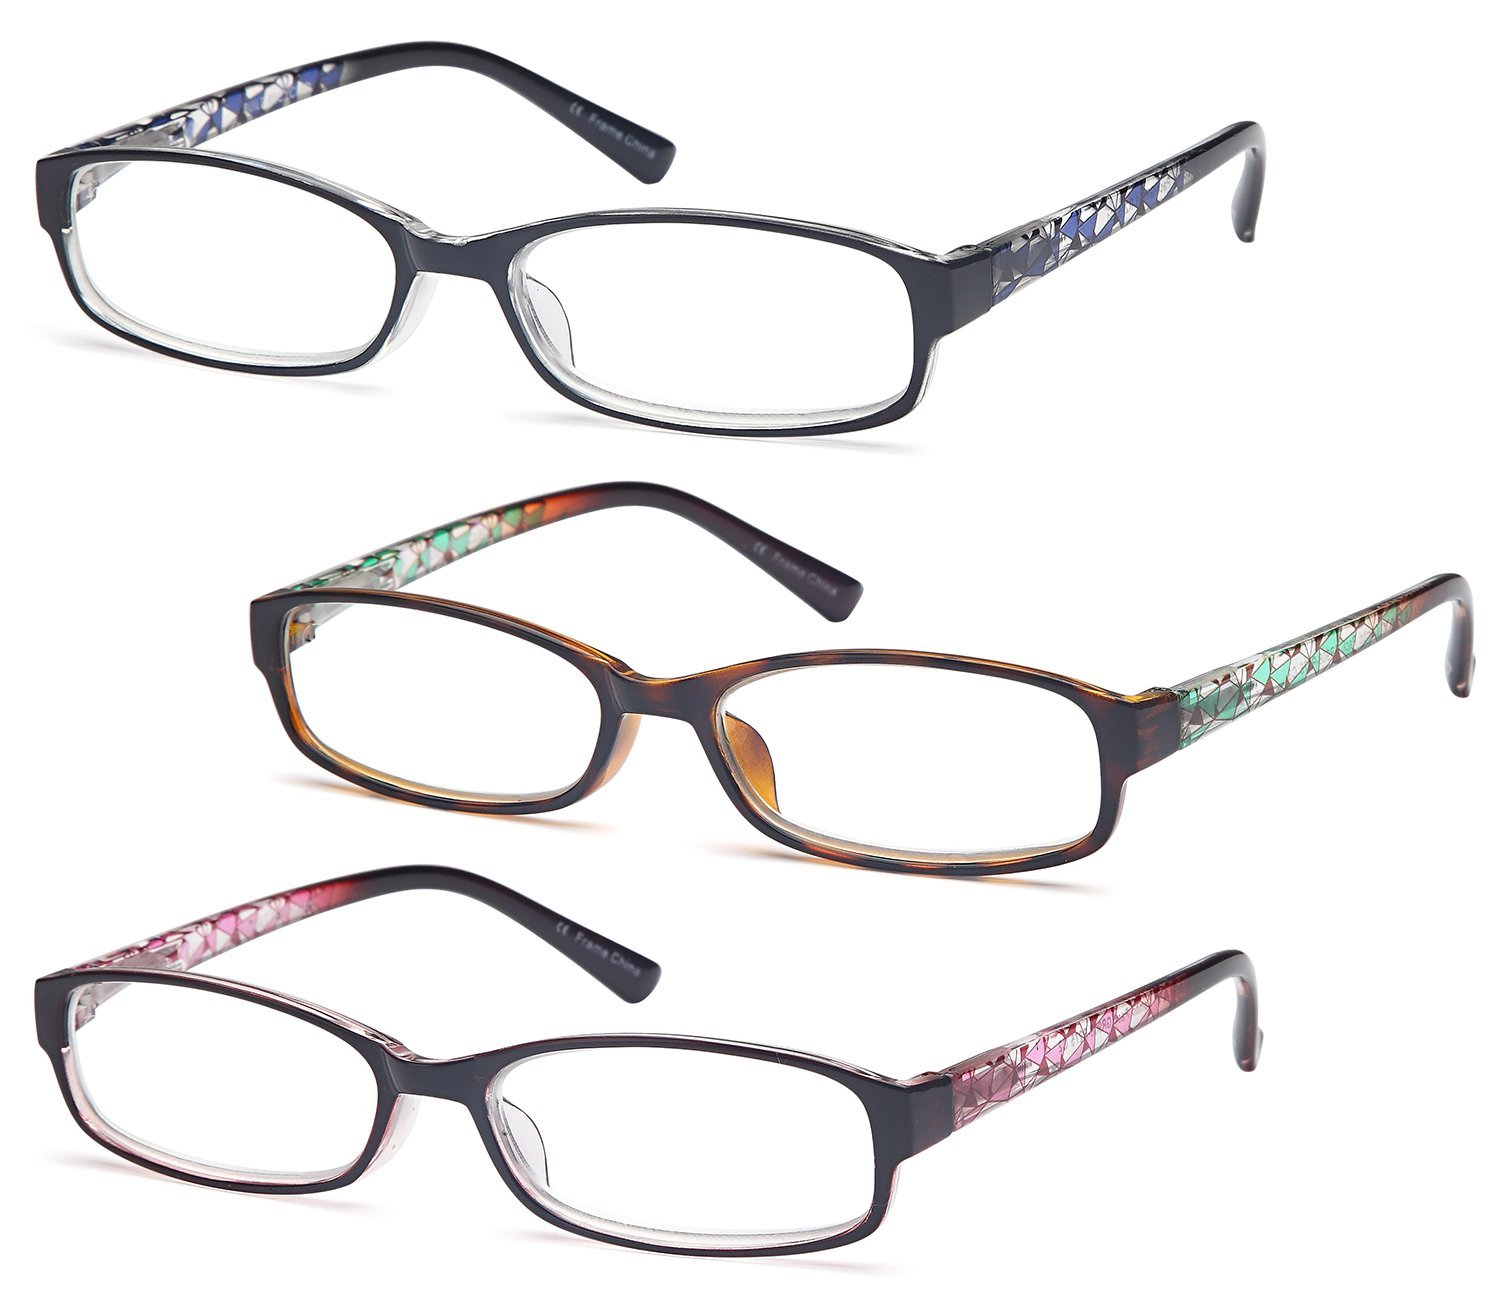 d3544a6de6 GAMMA RAY Readers 3 Pack of Thin and Elegant Womens Reading Glasses with  Beautiful Patterns for Ladies